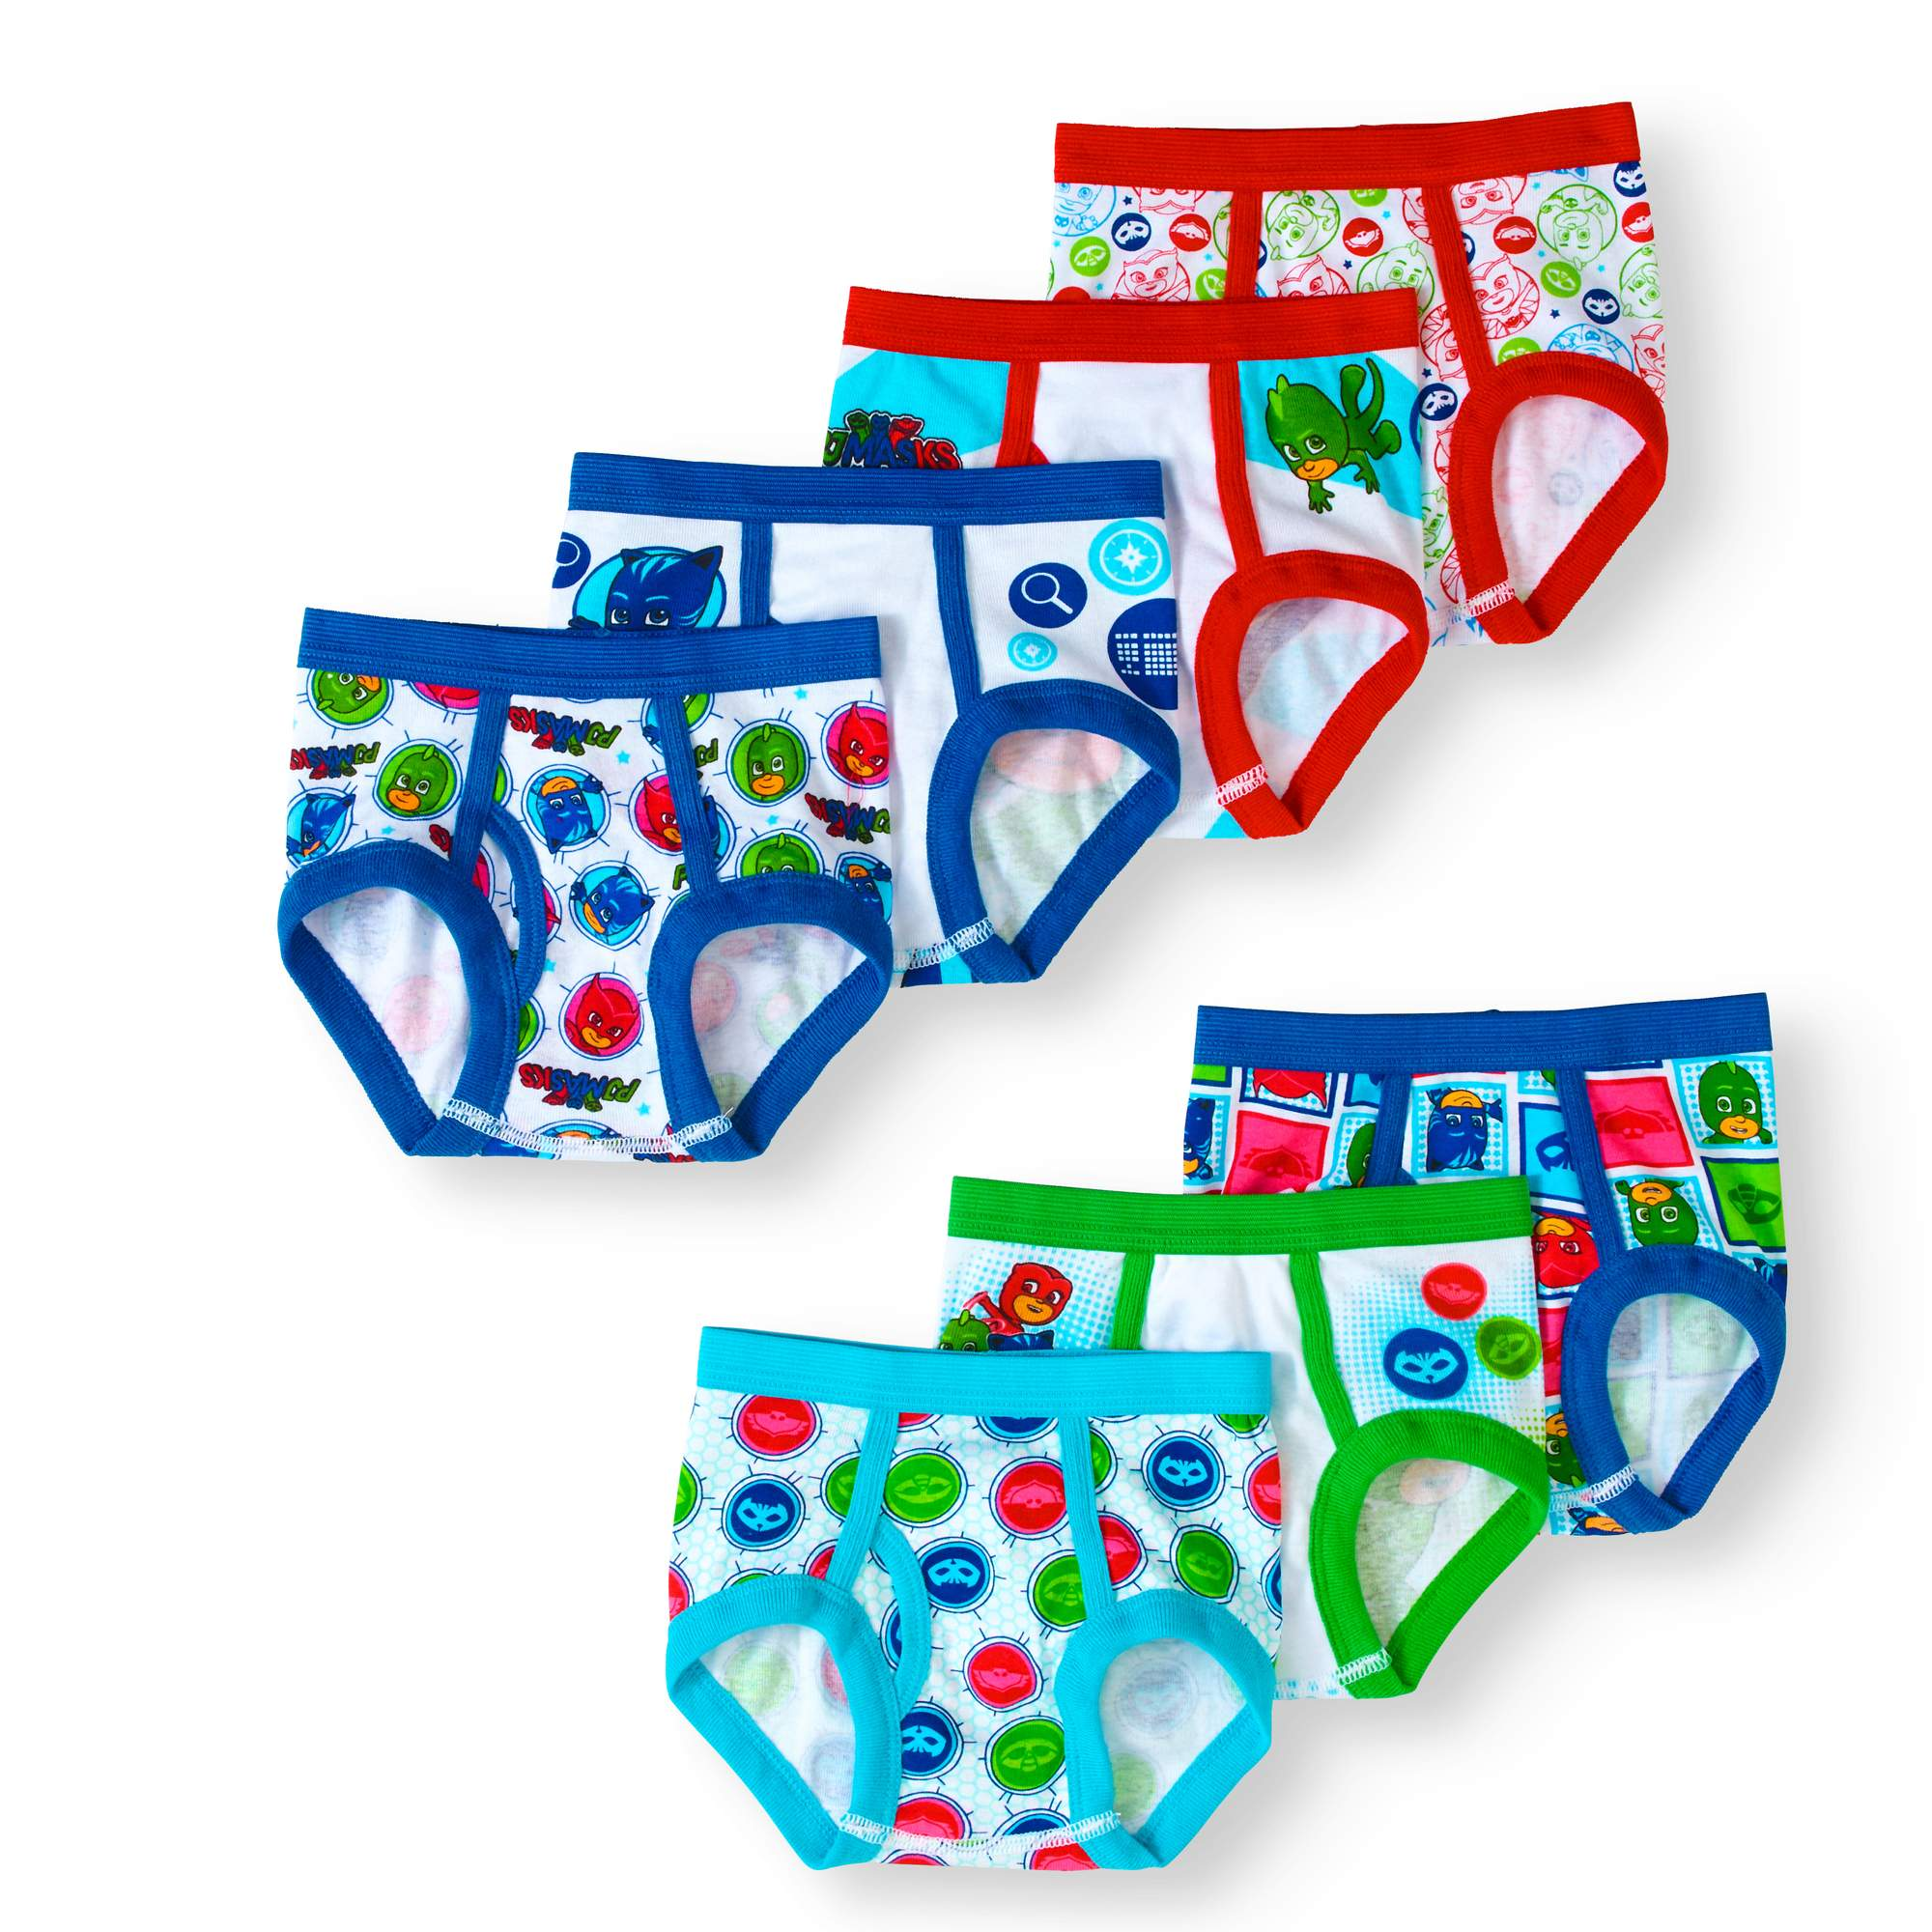 Toddler Boy Underwear, 7-pack